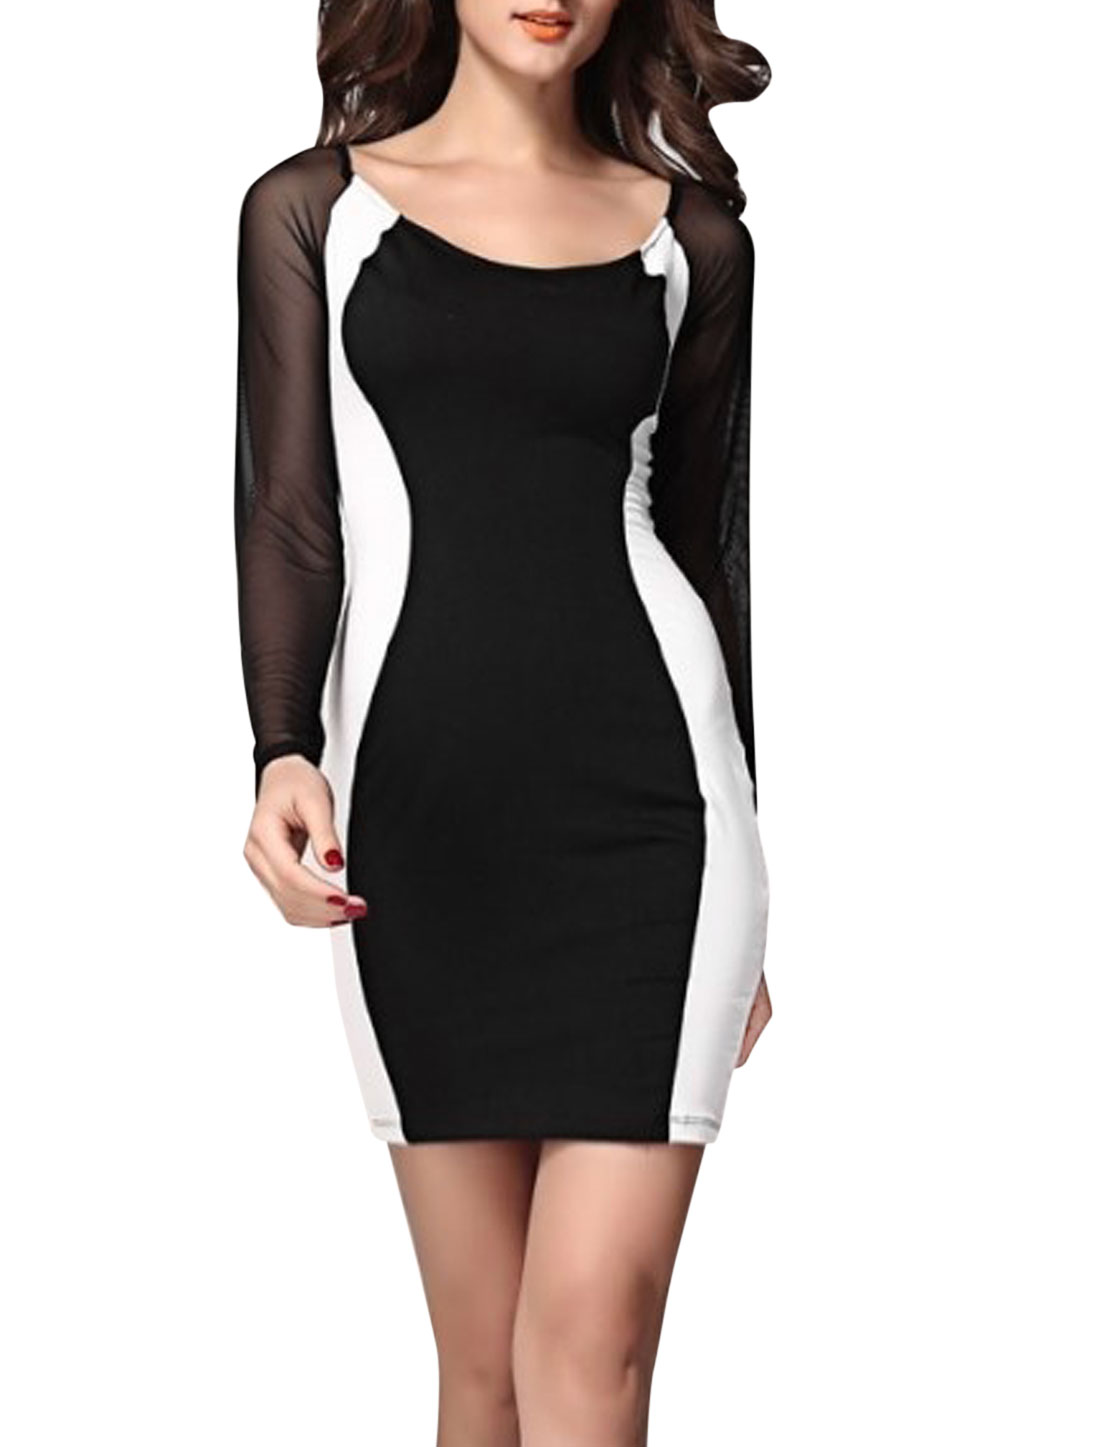 Women Round Neck Mesh Spliced Contrast Color NEW Sheath Dress Black L